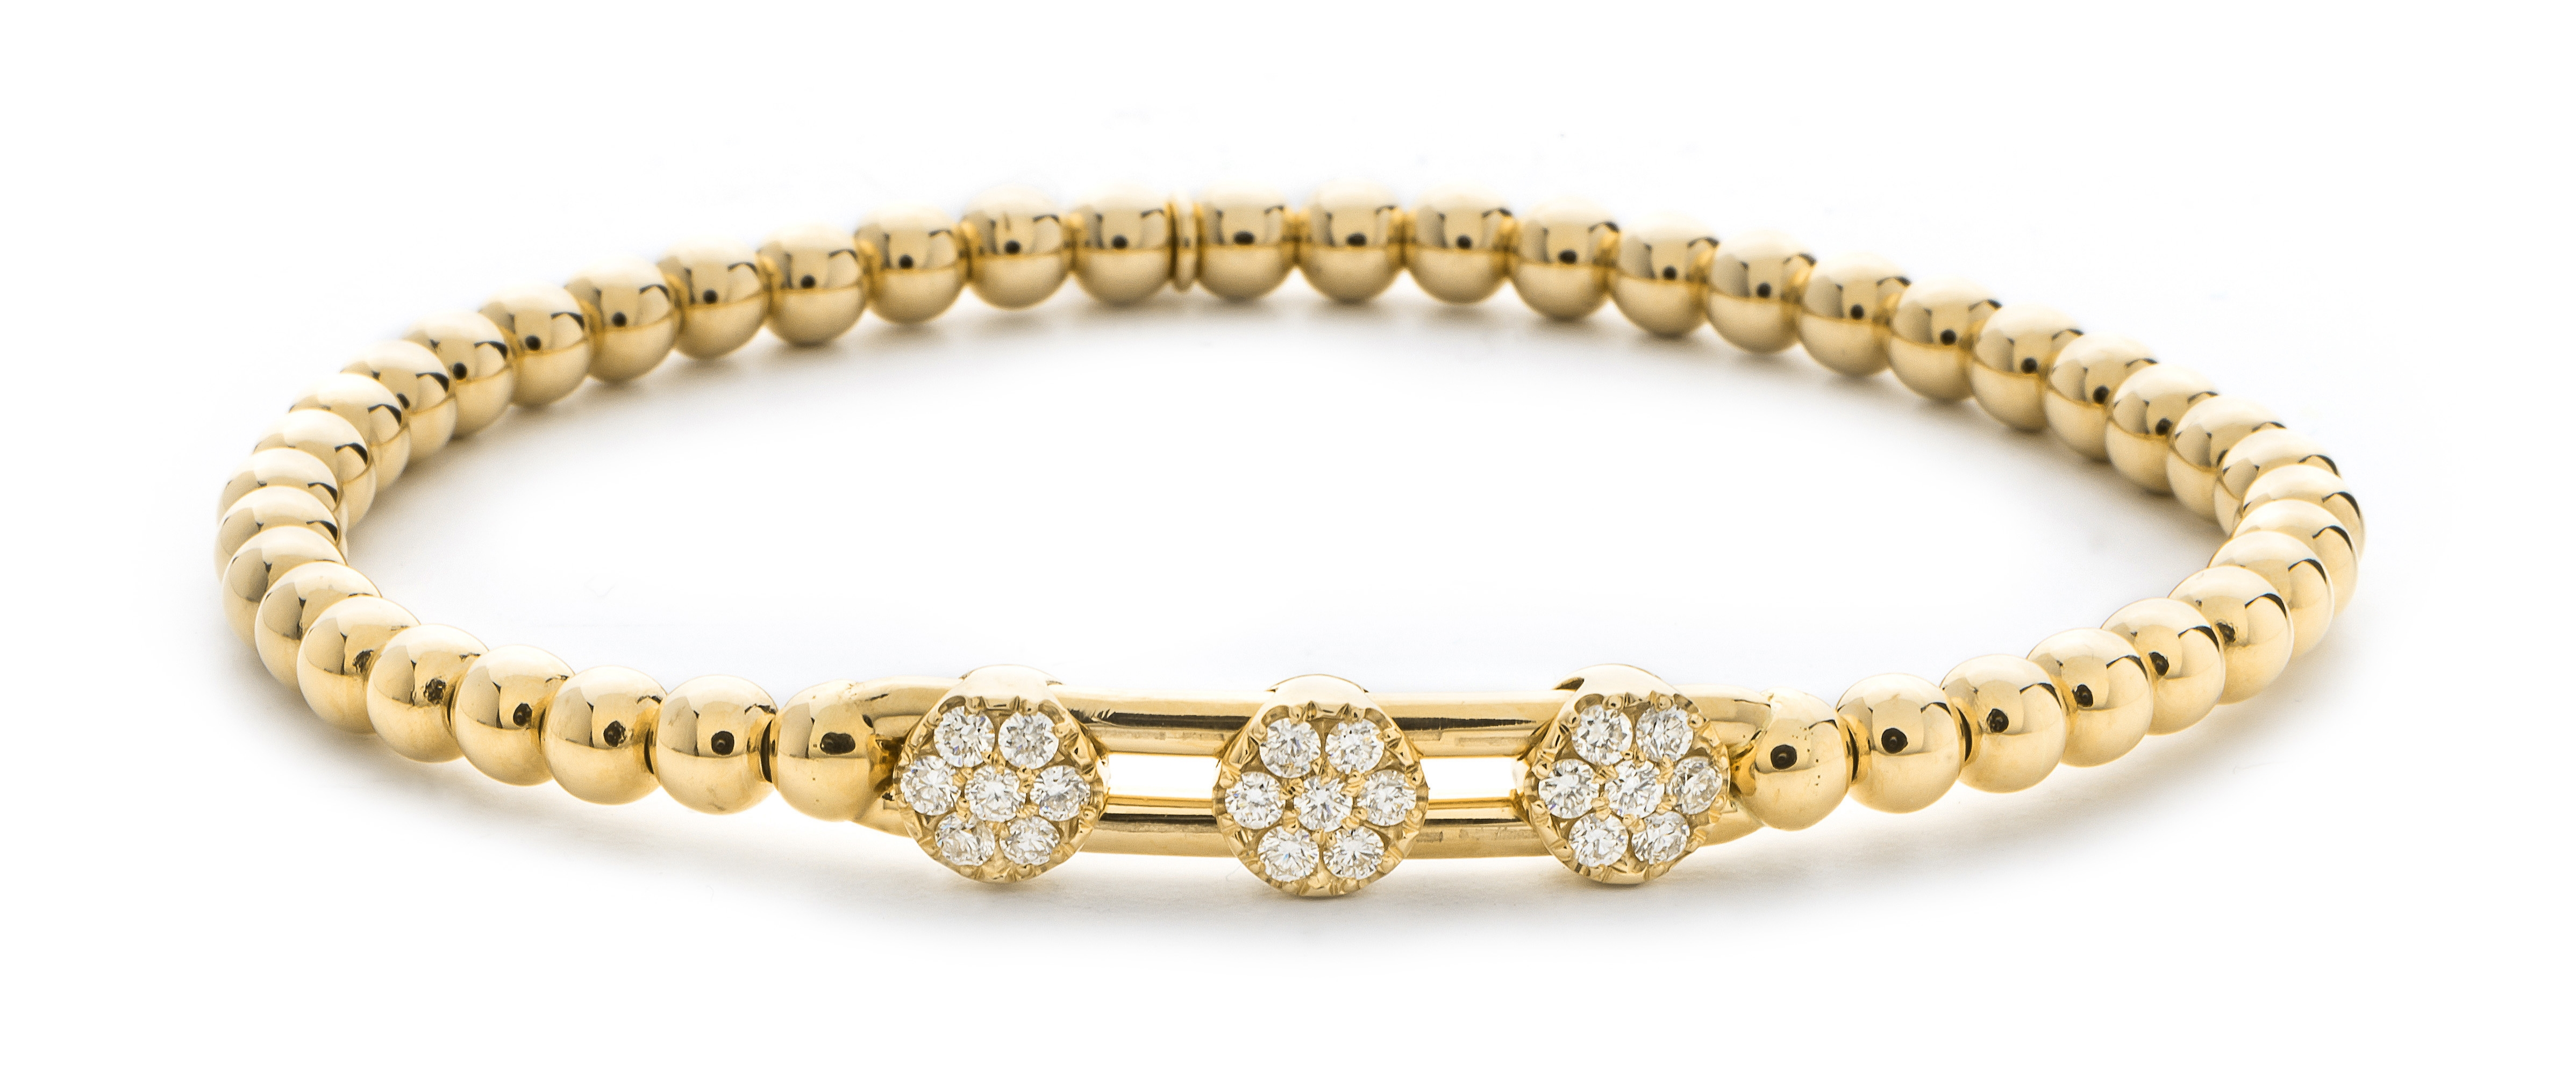 Hulchi Belluni 18K Yellow Gold Diamond Stretch Bracelet